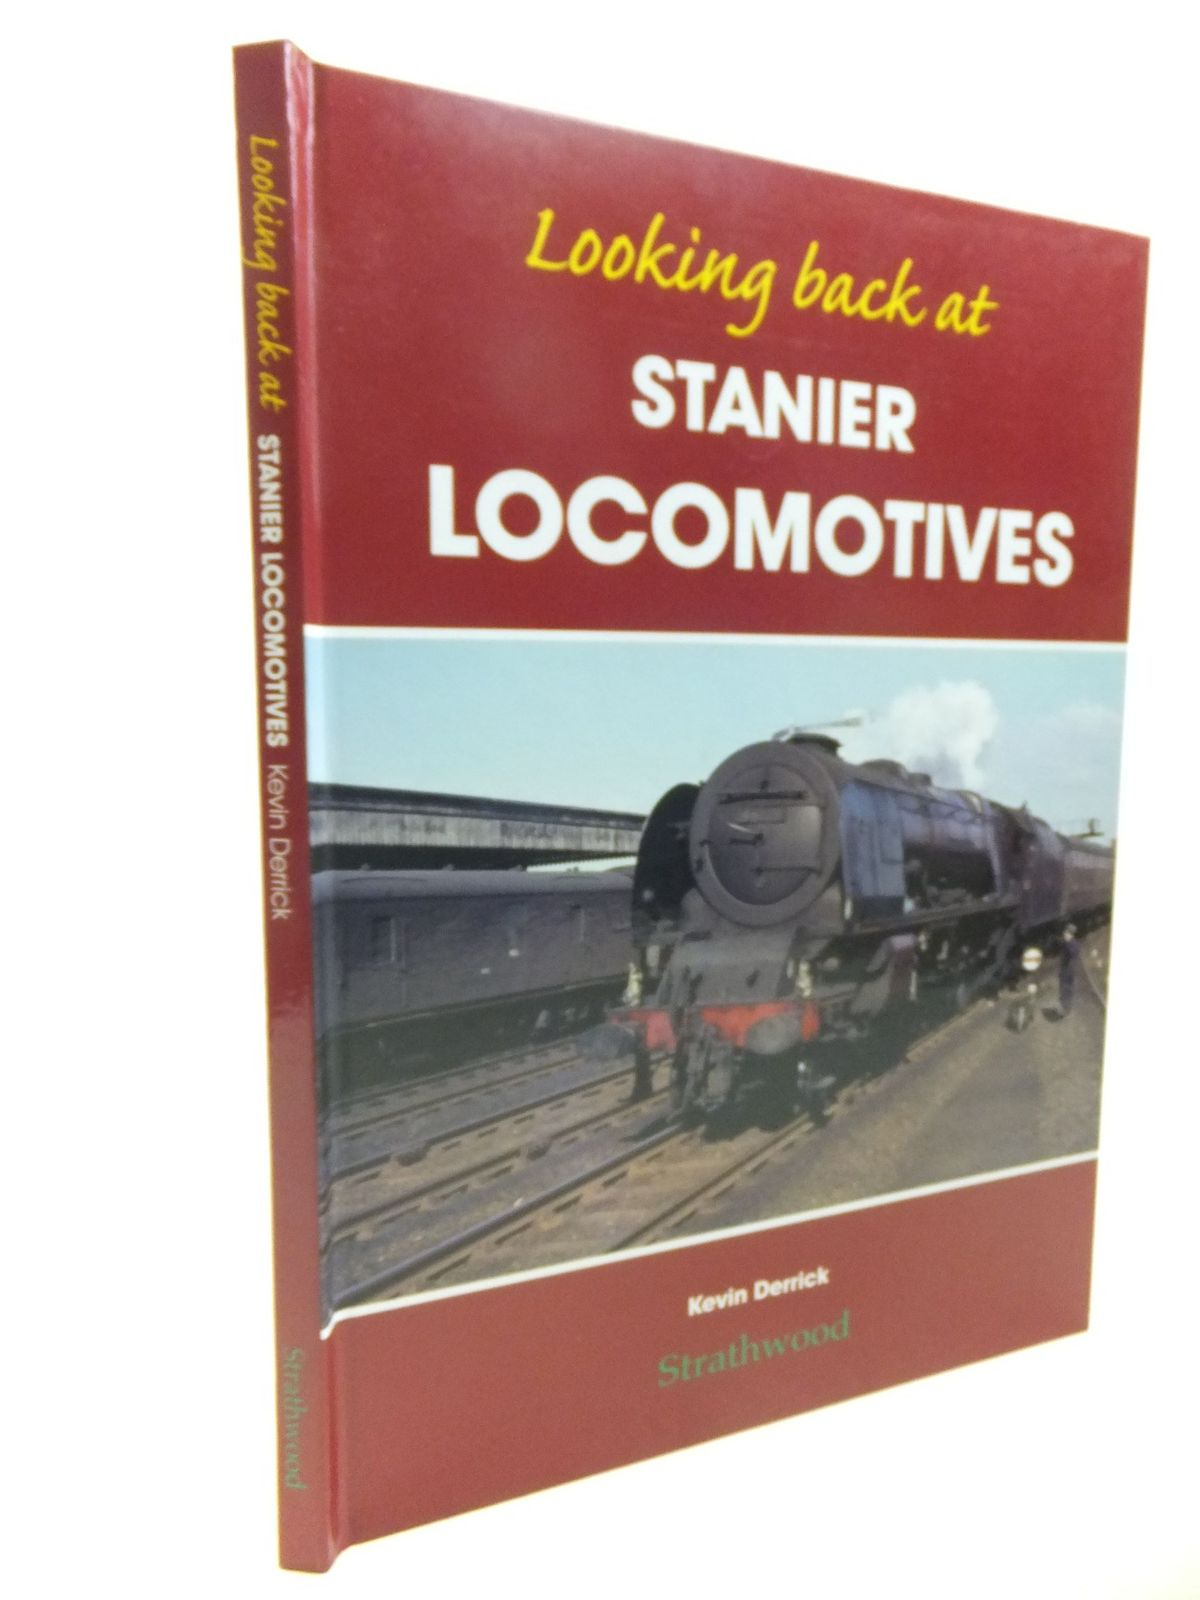 Photo of LOOKING BACK AT STANIER LOCOMOTIVES written by Derrick, Kevin published by Strathwood Ltd (STOCK CODE: 1713615)  for sale by Stella & Rose's Books